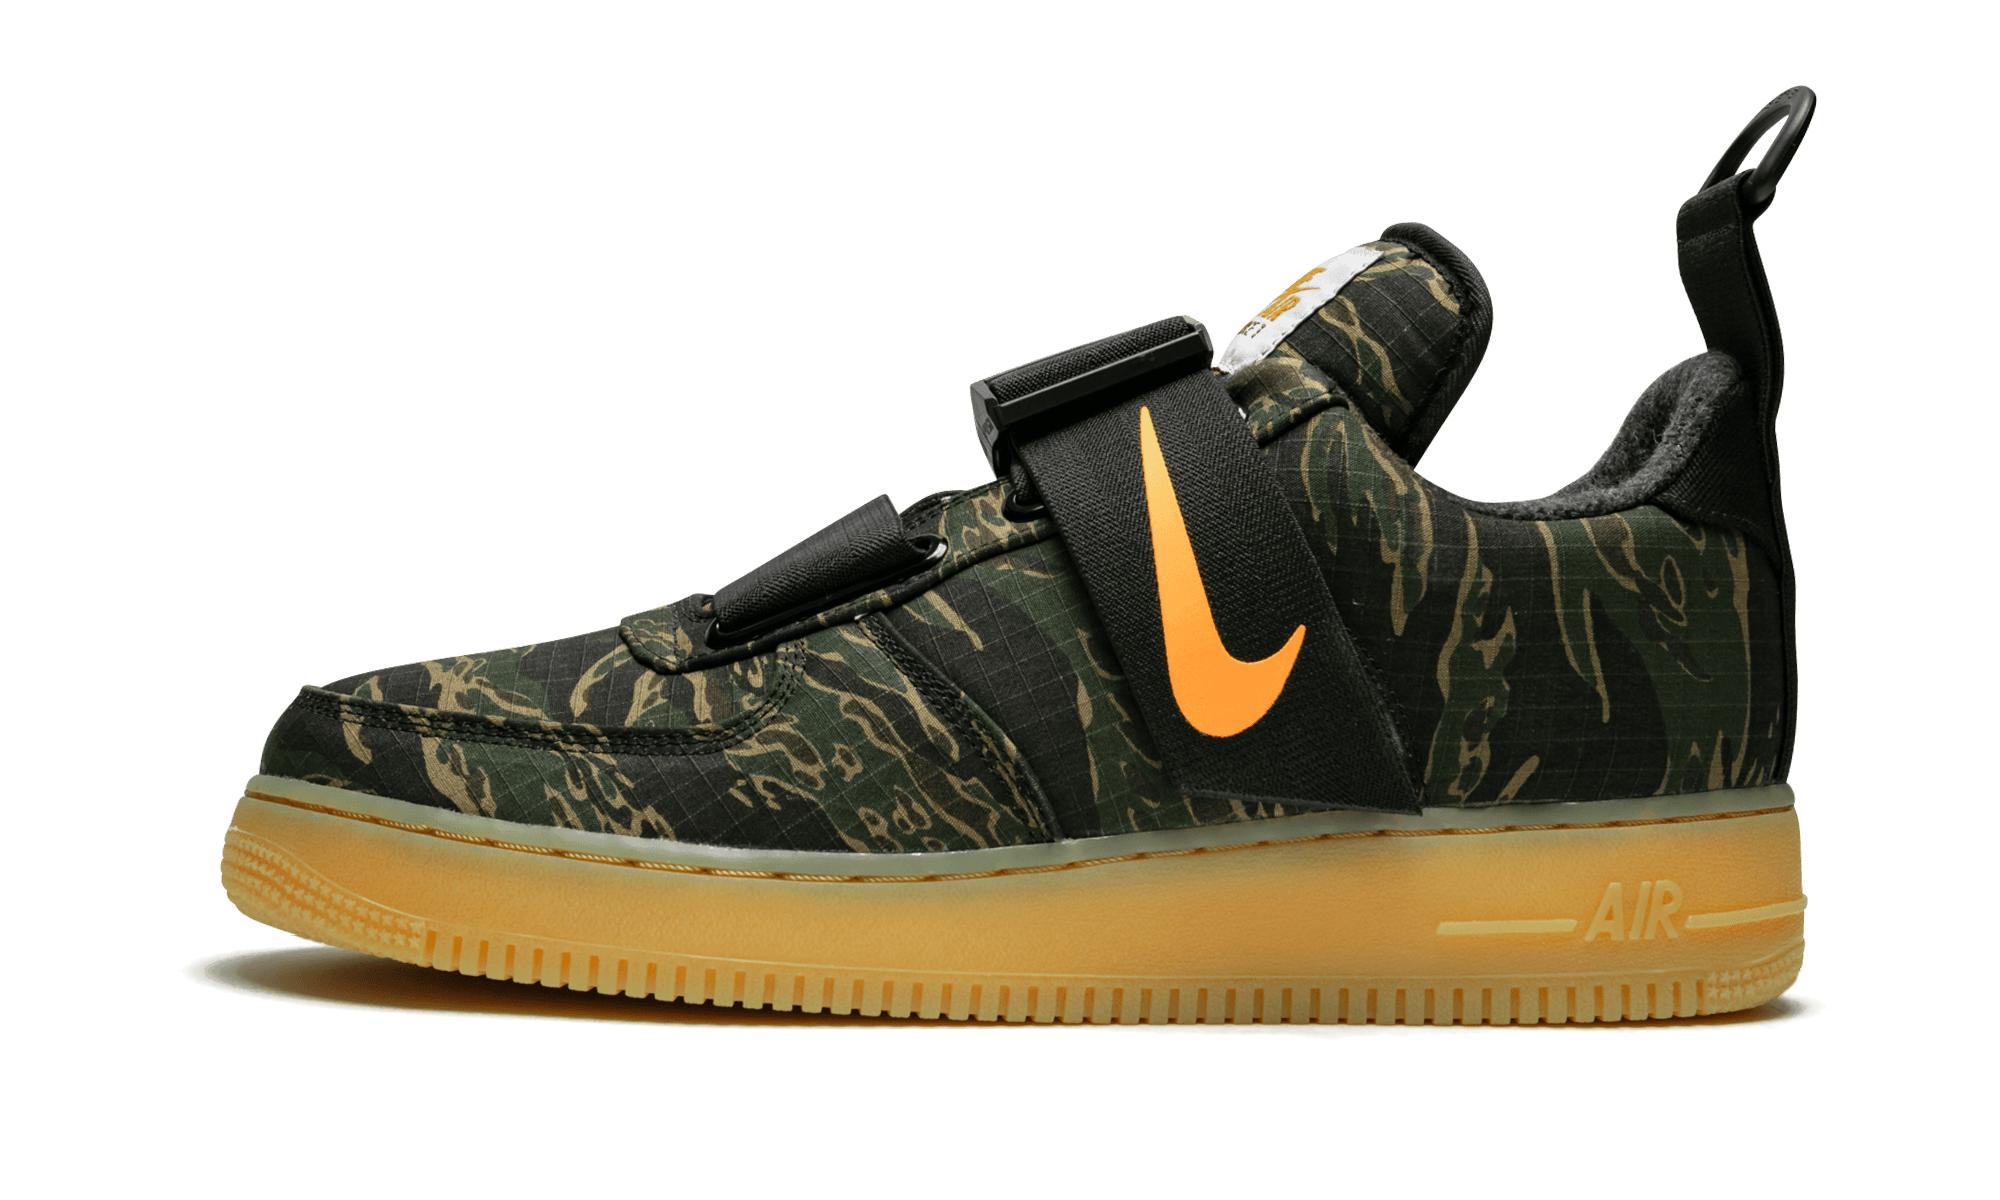 1dc00462ba62 Lyst - Nike Air Force 1 Utility Low Premium Wip Sneaker in Green for ...